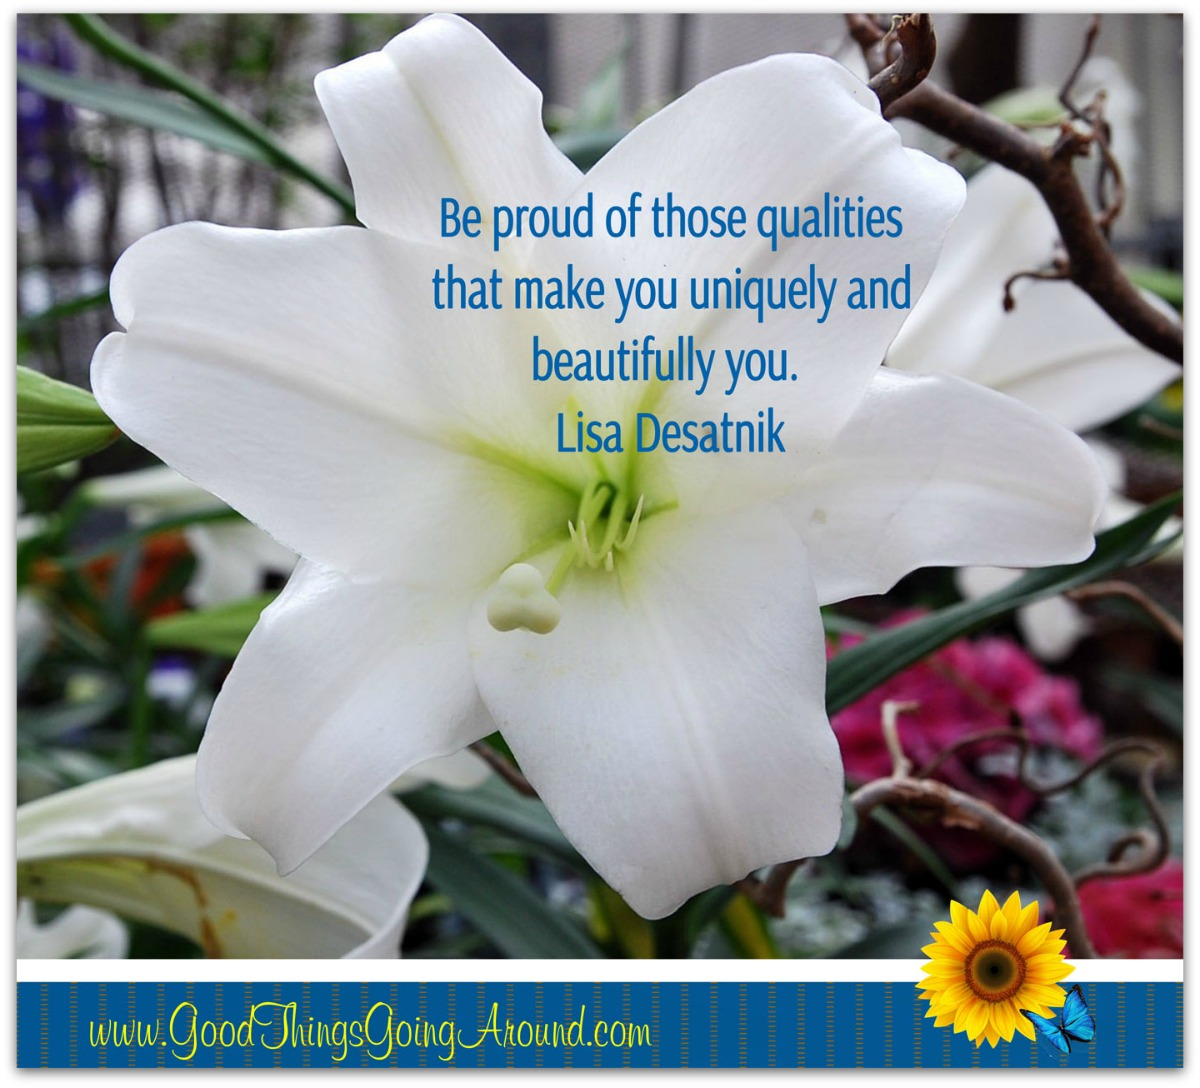 Be proud of what makes you uniquely different, beautiful and YOU!